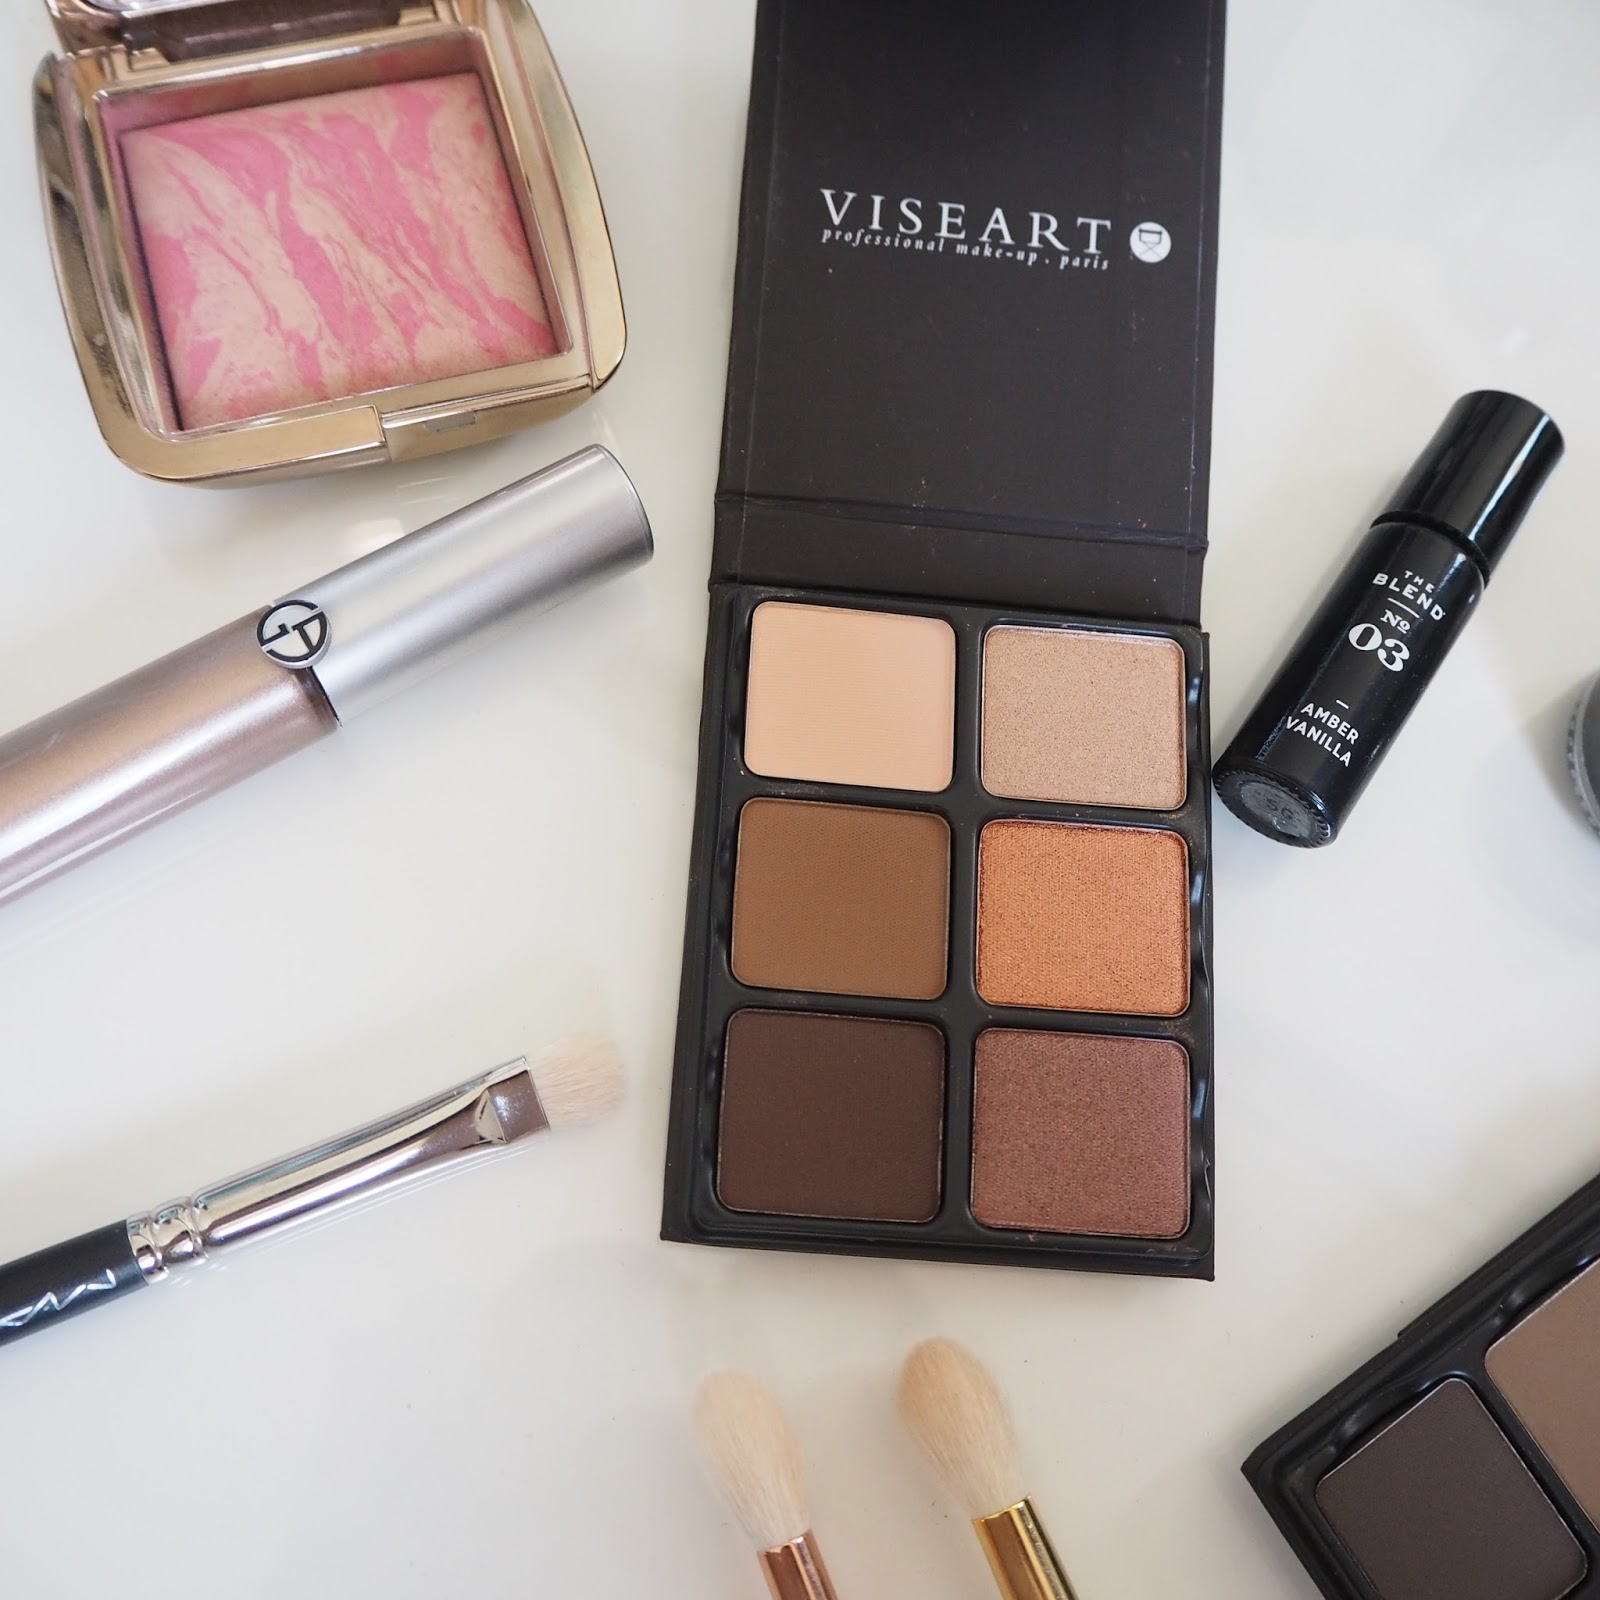 Viseart Theory Palettes in Cashmere and Minx